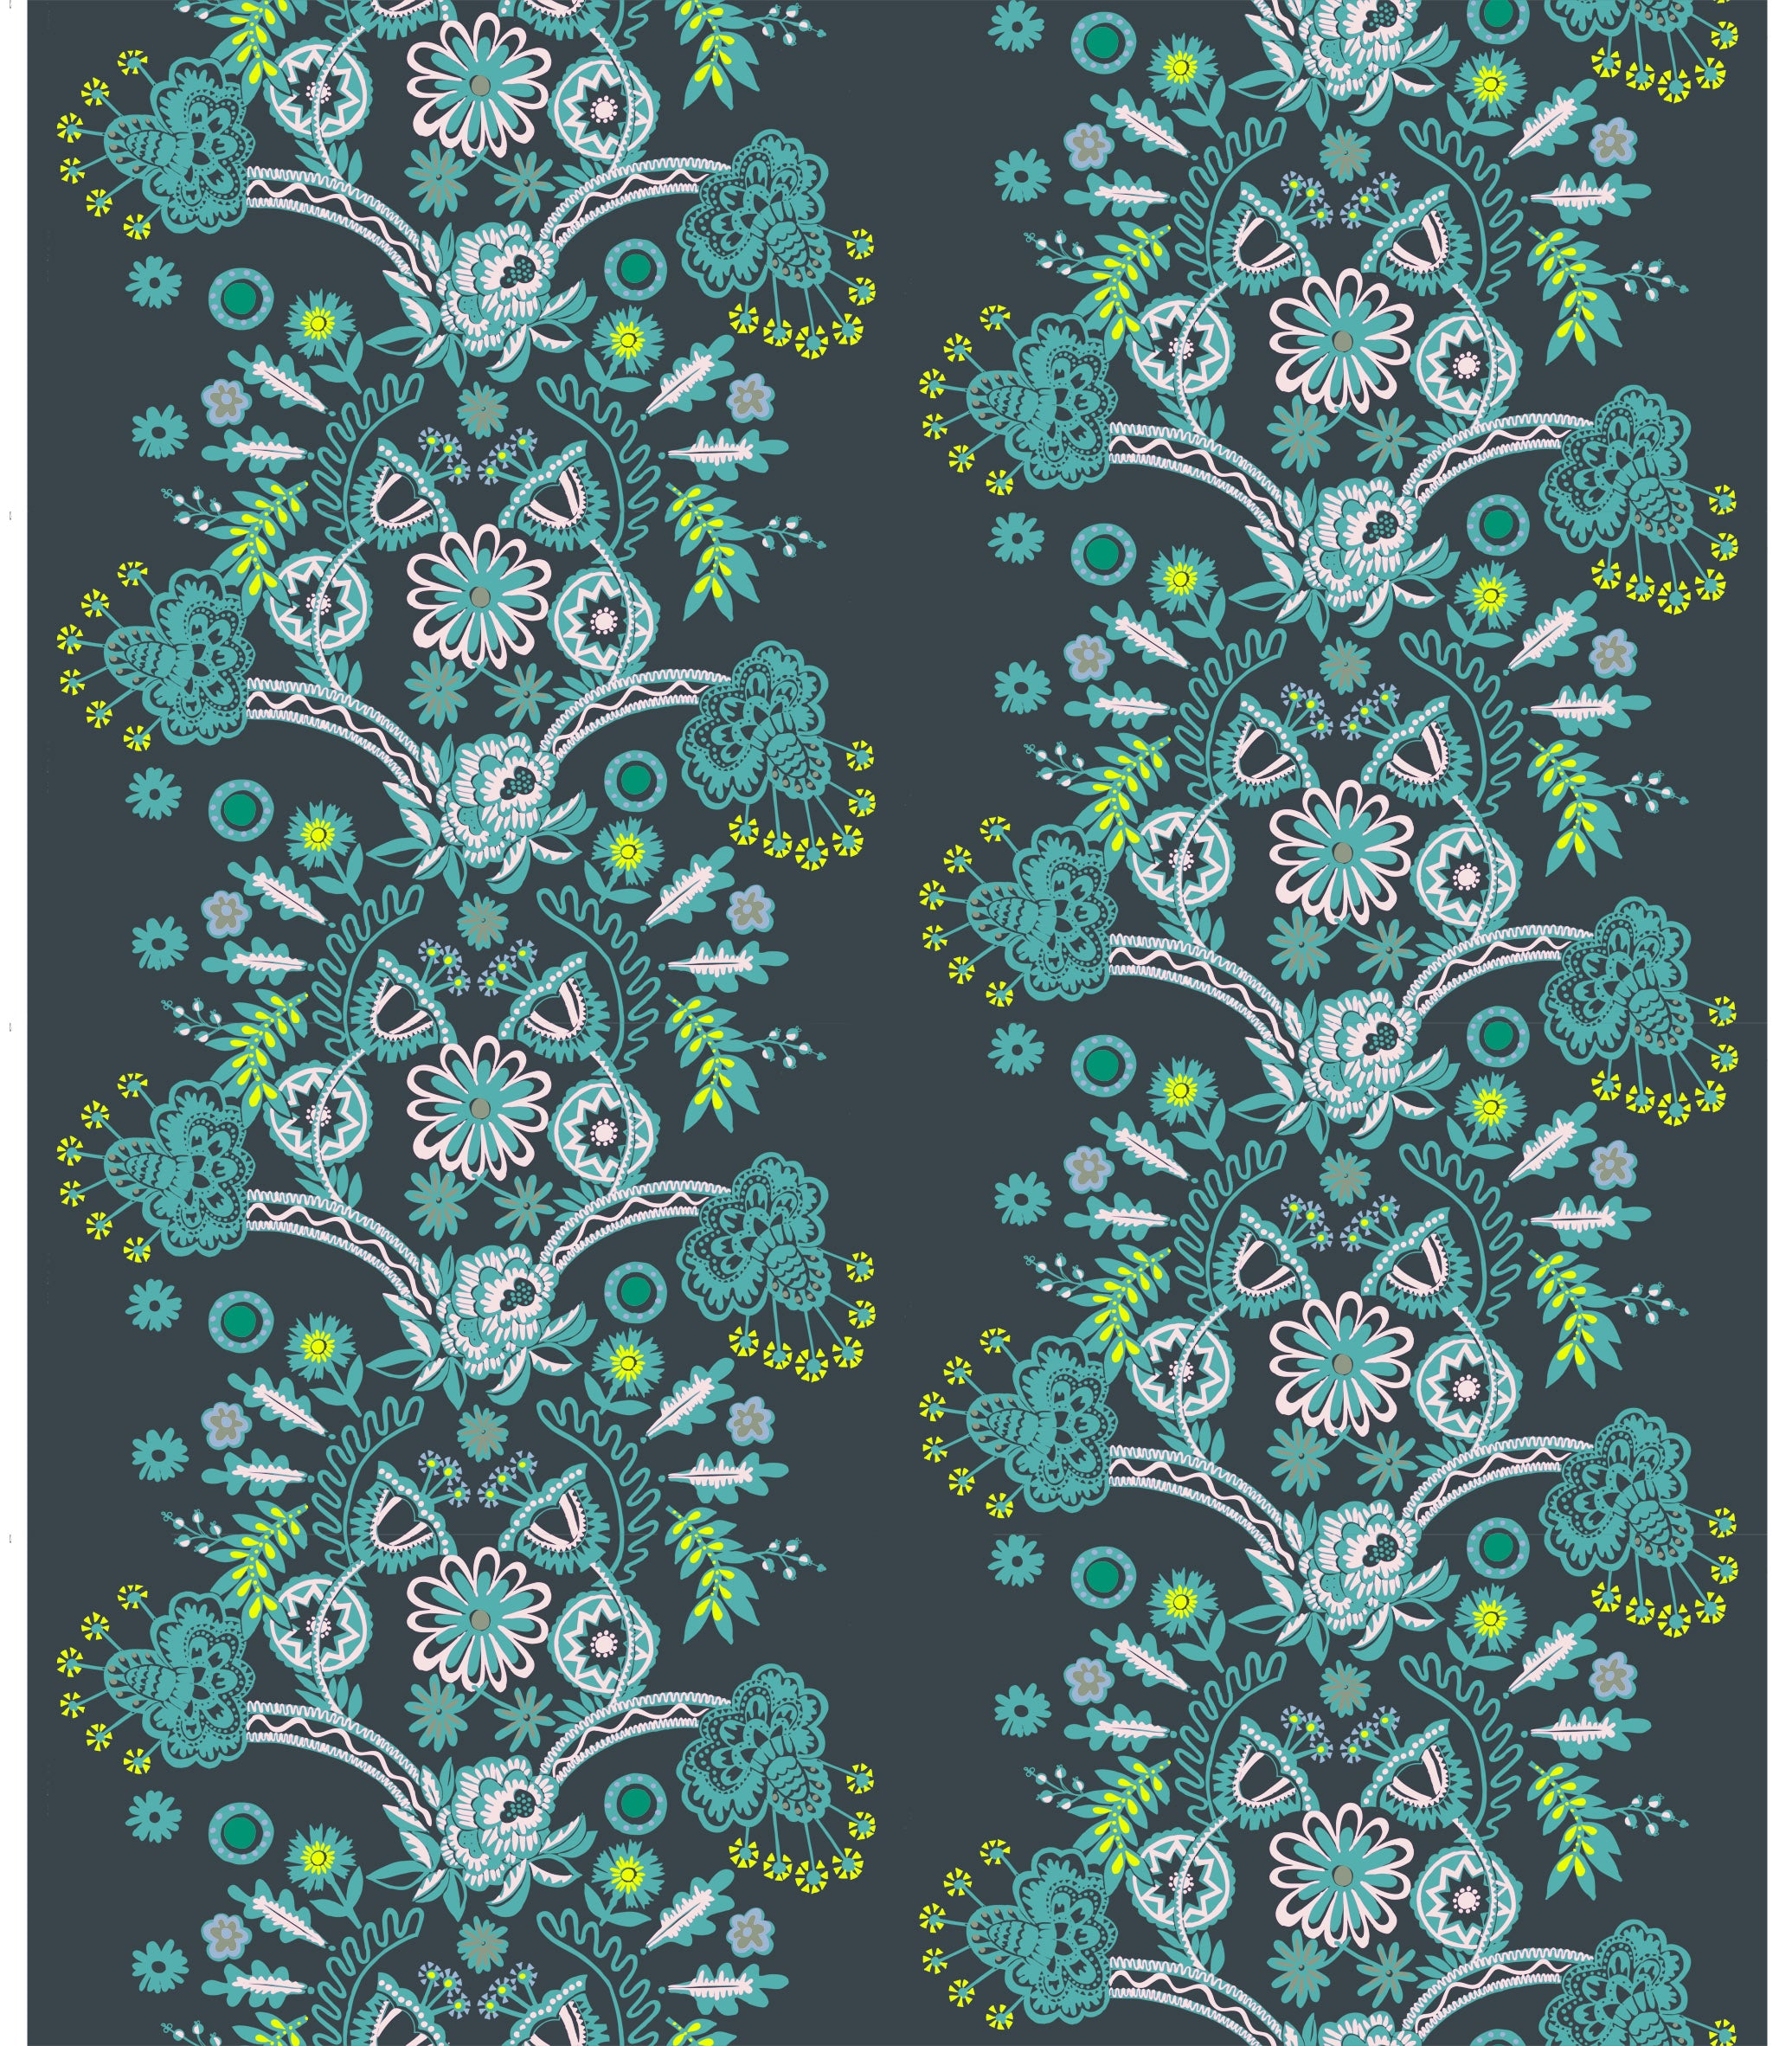 10 Holland Street Cotton Fabric Vase Series Janey Blue Print cotton Blinds Soft Furnishings Full half drop repeat